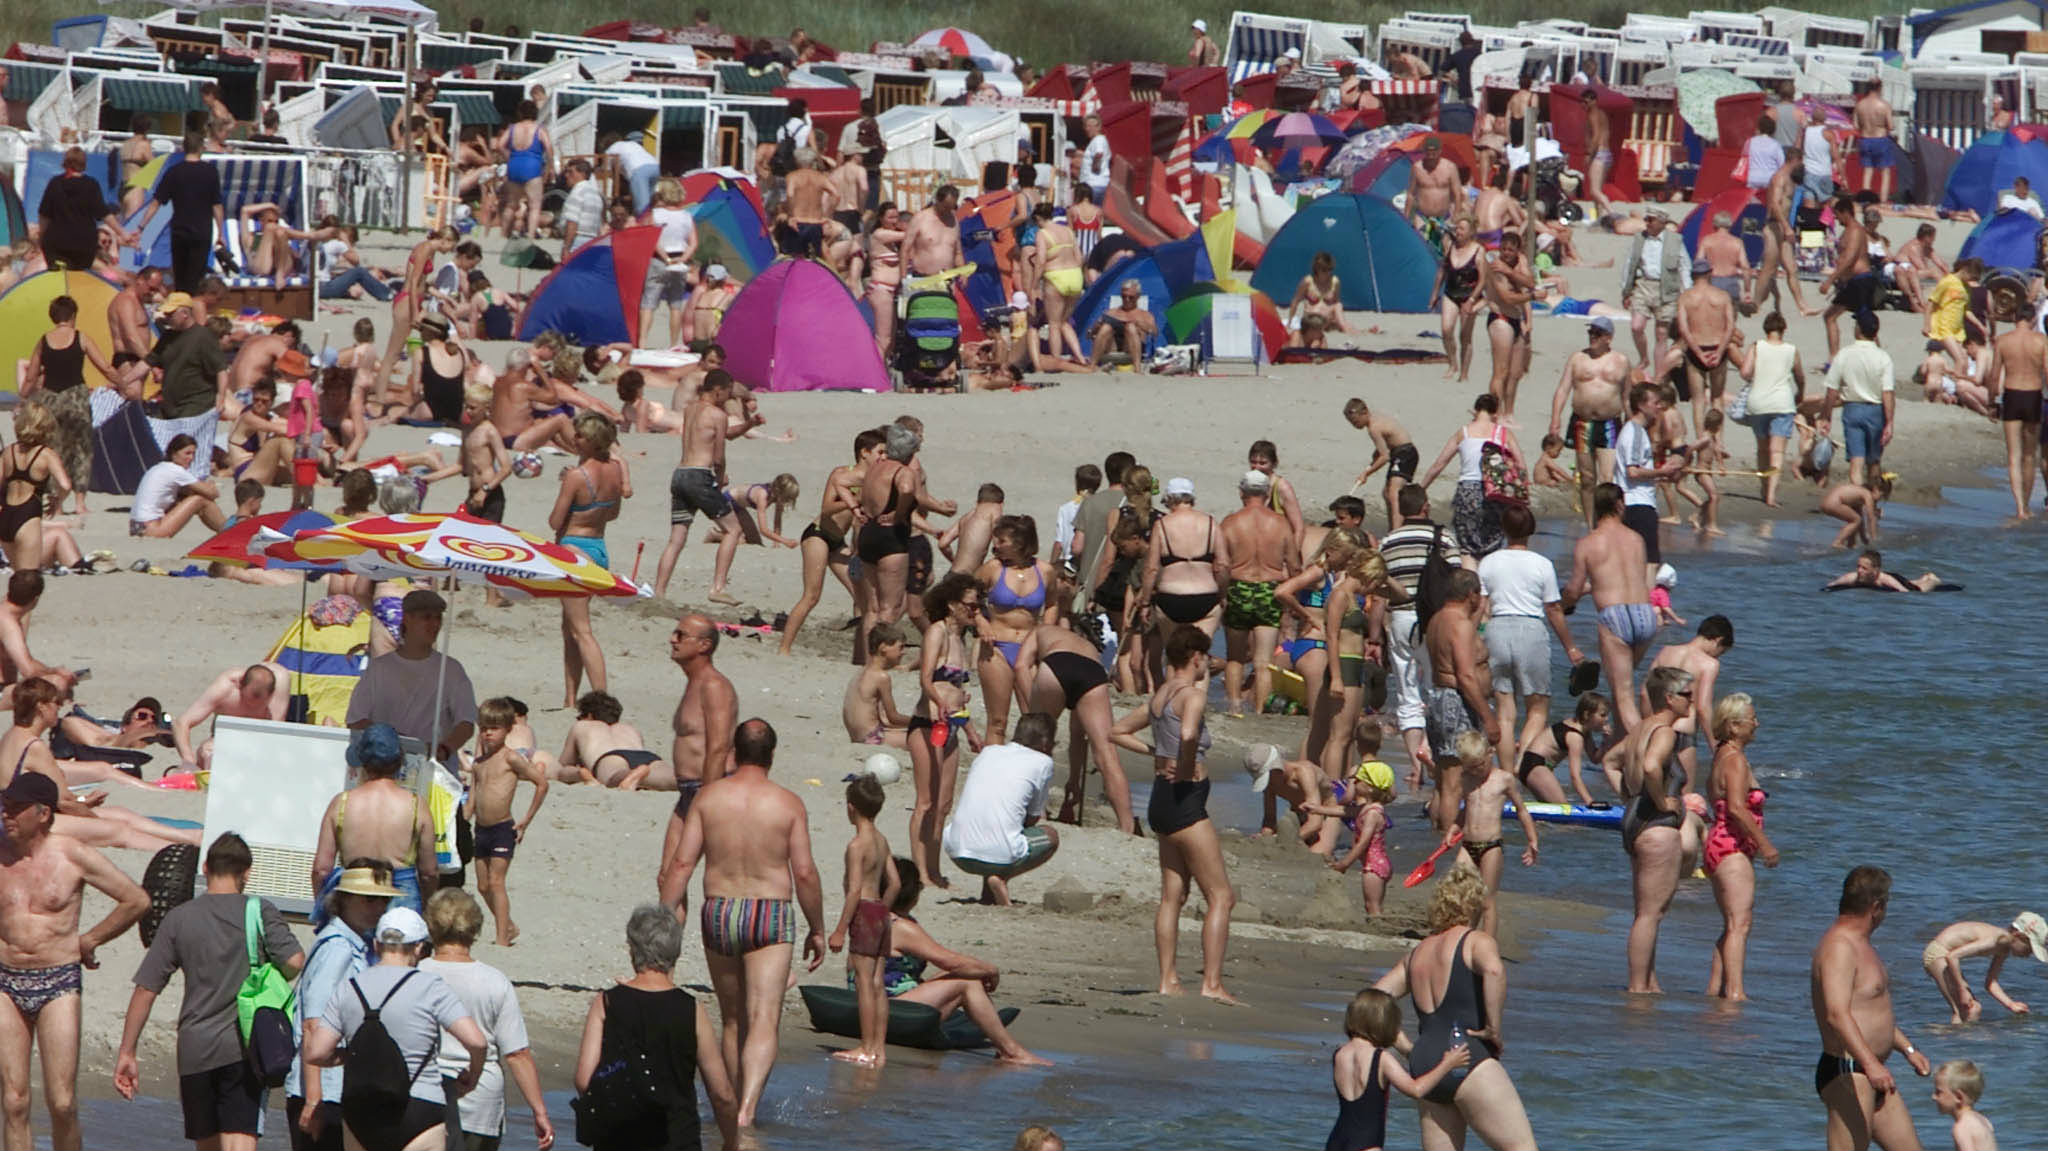 Tourists enjoy the high temperatures at a beach in the town of Binz July 3, 2001. Binz is a traditio.....